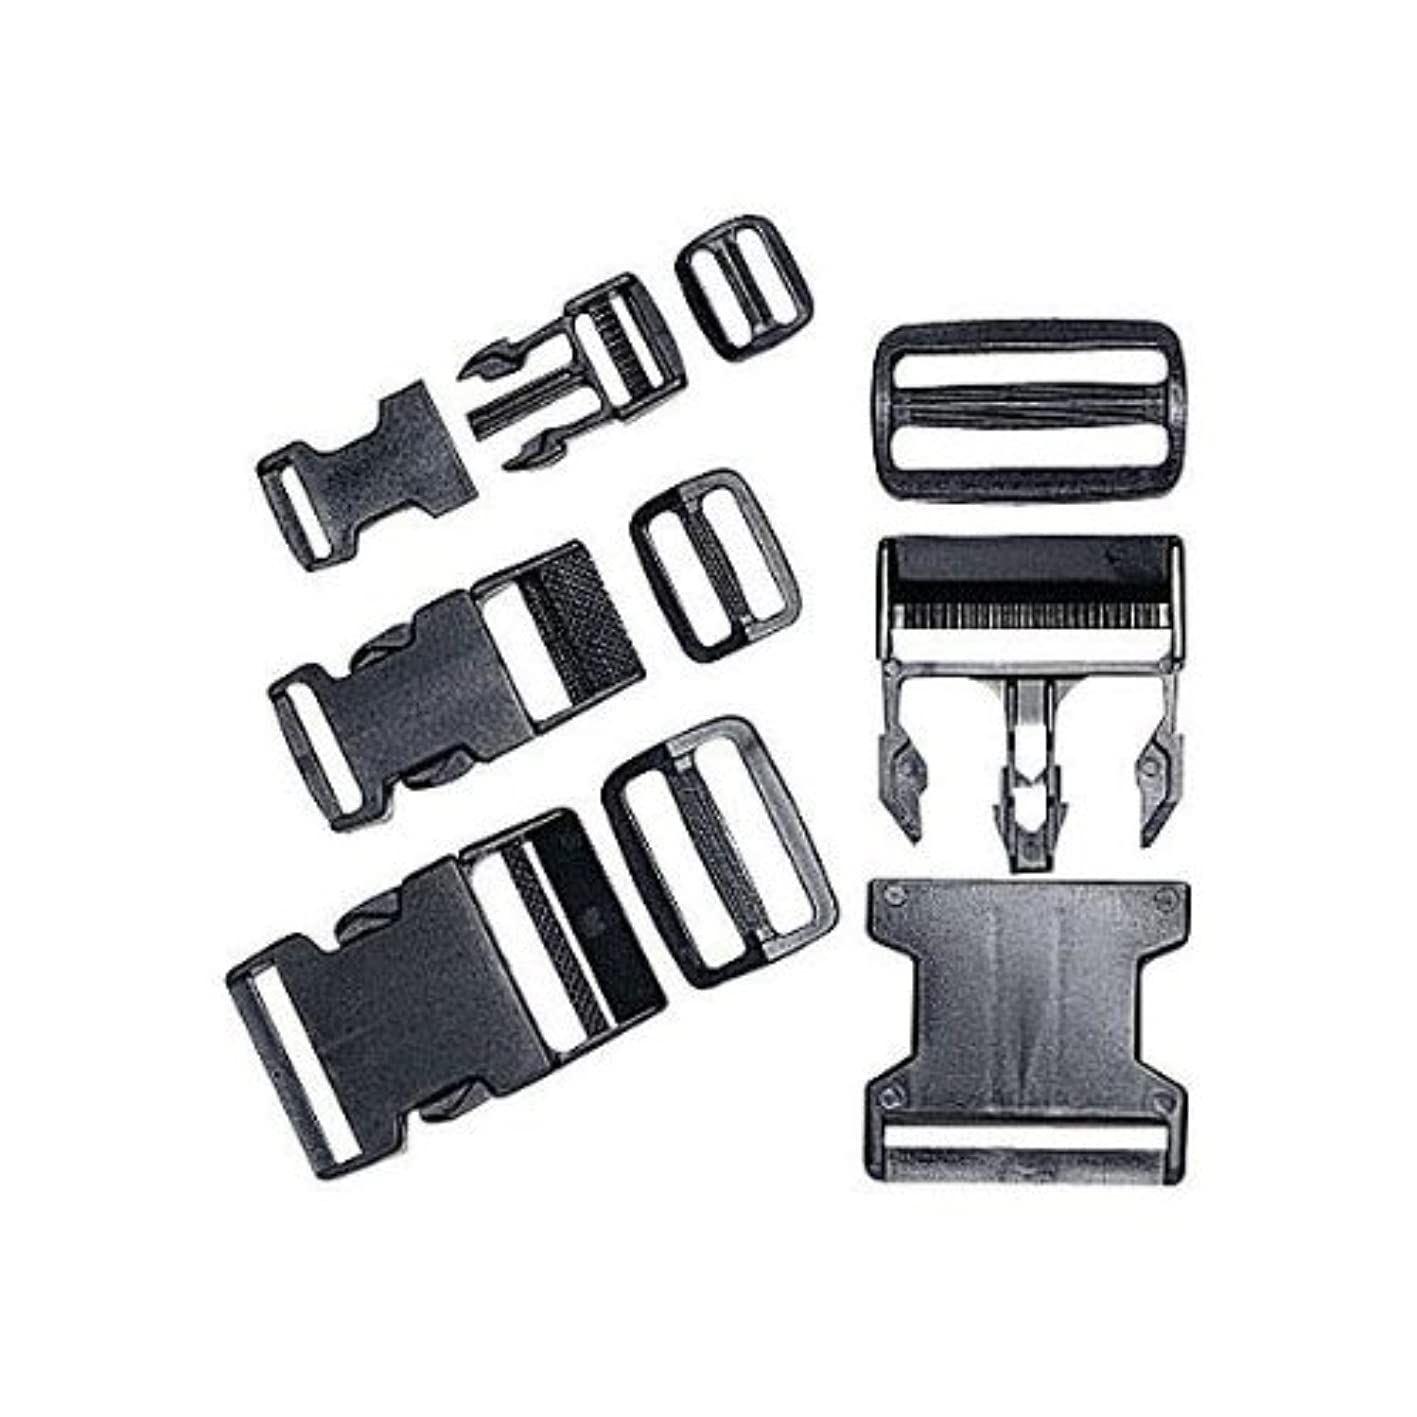 Stansport Side Release Buckle with Slider quobhewhypt177